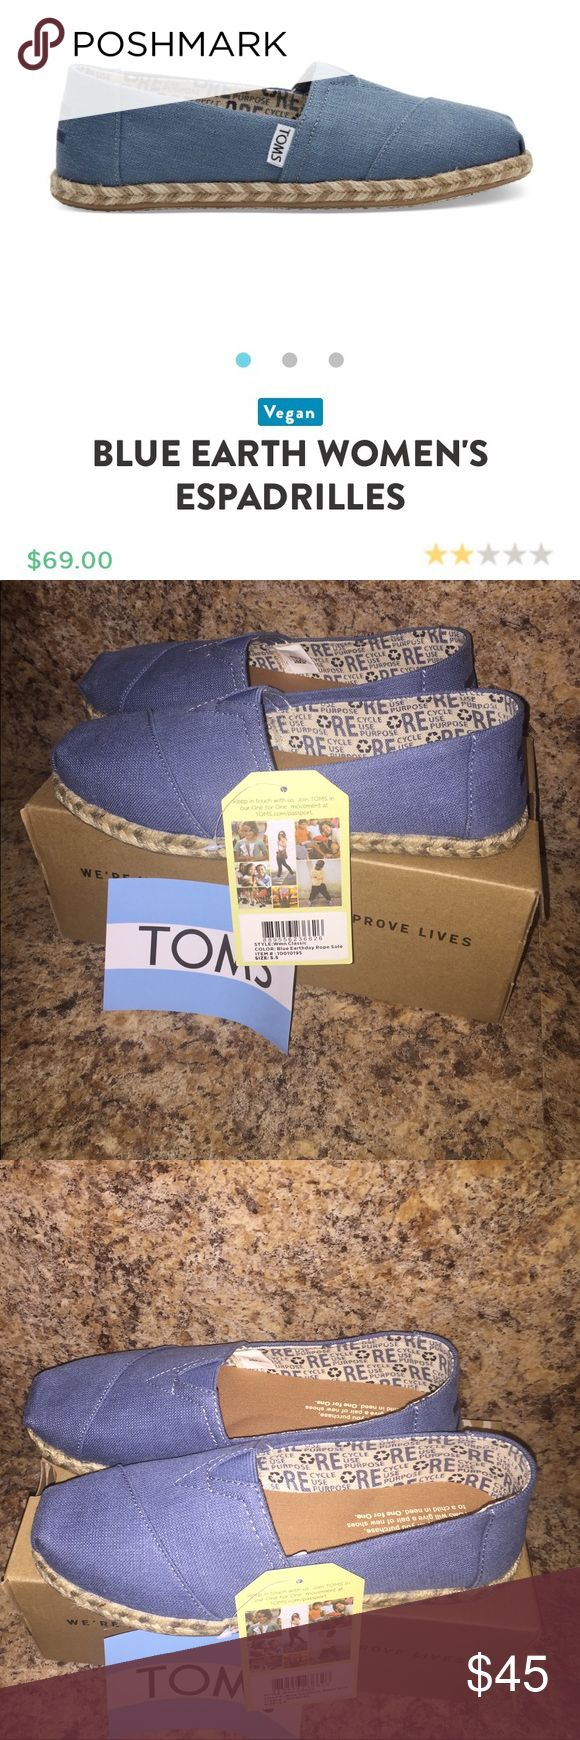 """🆕 Toms Classic In celebration of Mother Earth, these Classic Alpargatas are made from hemp and recycled polyester. So go explore the world in them—the molded insole will keep you comfortable. 77% hemp 23% recycled poly blue upper Traditional Alpargata style with elastic """"V"""" for easy fit Natural jute rope sole Molded removable insole, cotton twill sock liner fights bacteria Vegan TOMS Shoes Flats & Loafers"""